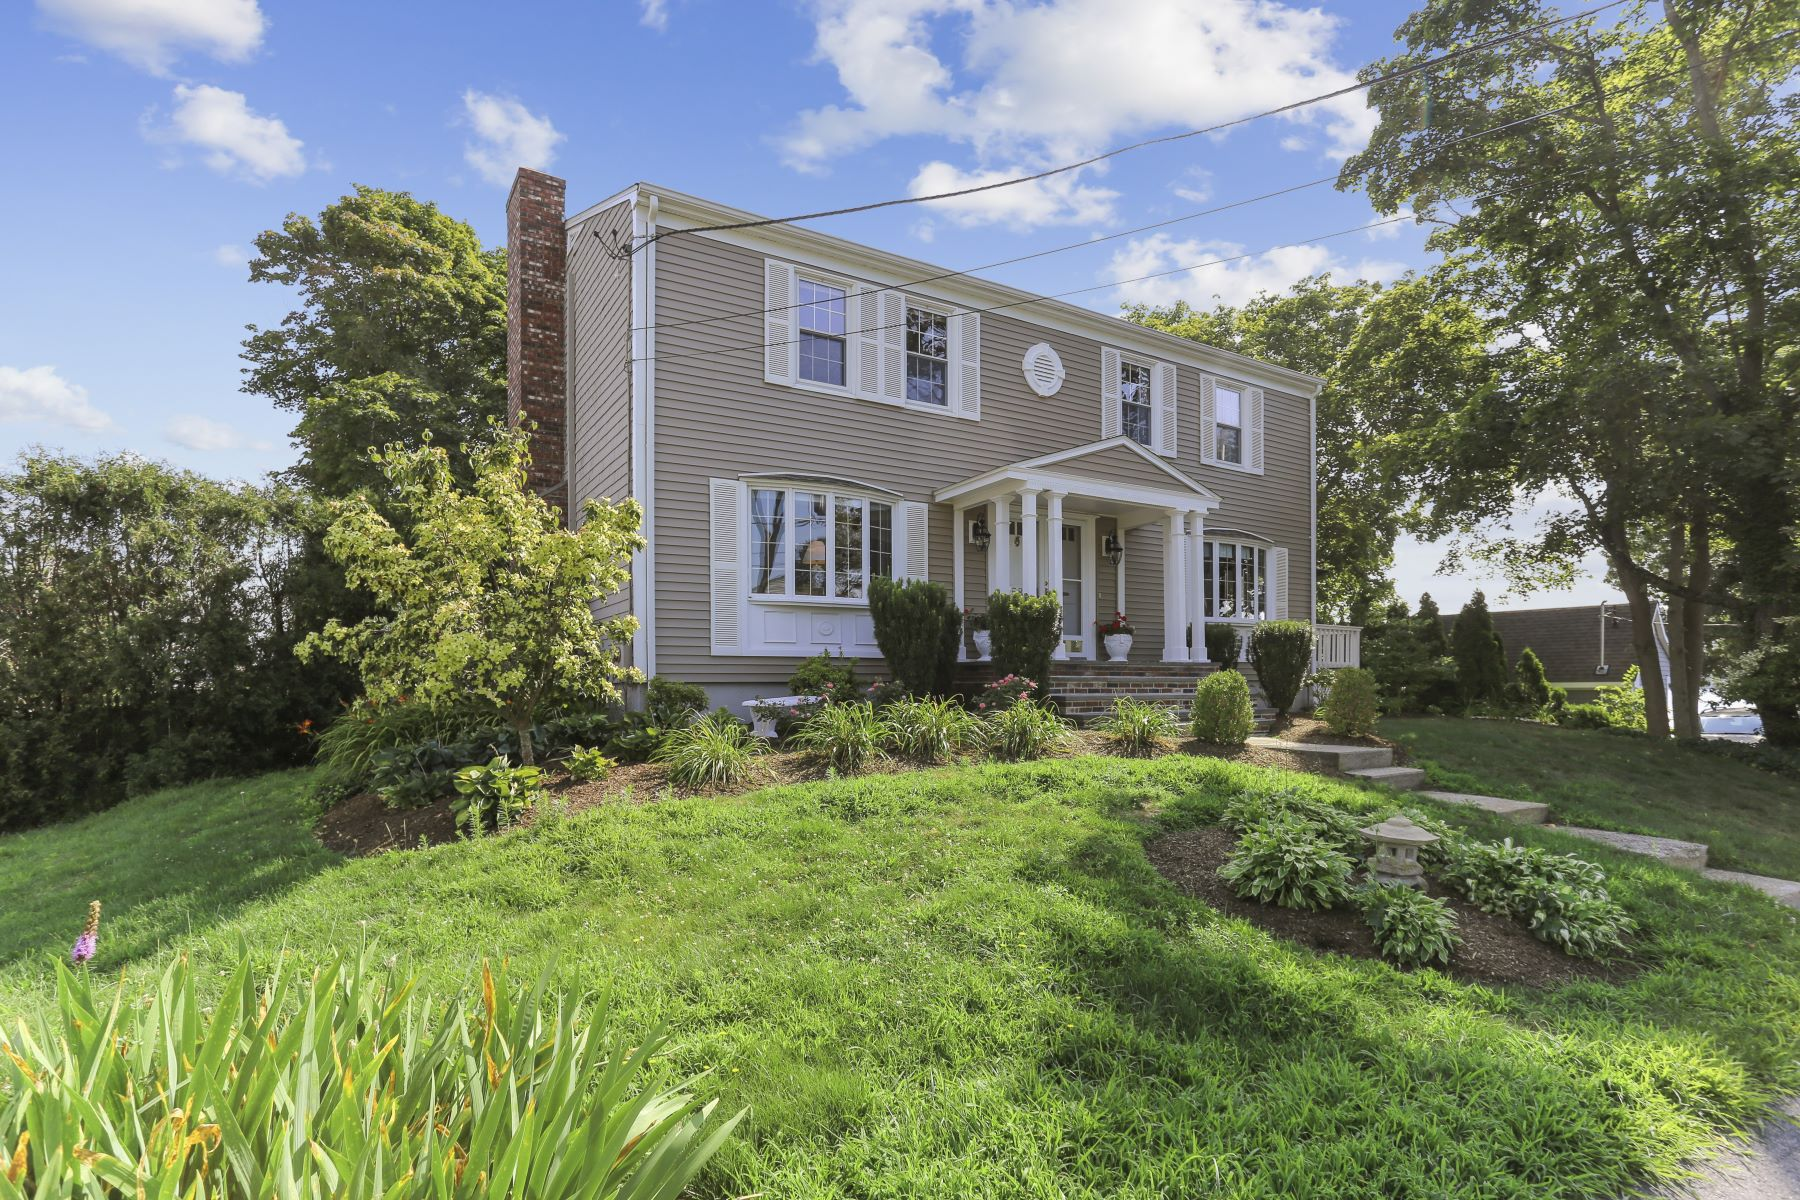 Single Family Homes for Sale at 58 Gay Street, Somerset, MA 58 Gay Street Somerset, Massachusetts 02726 United States